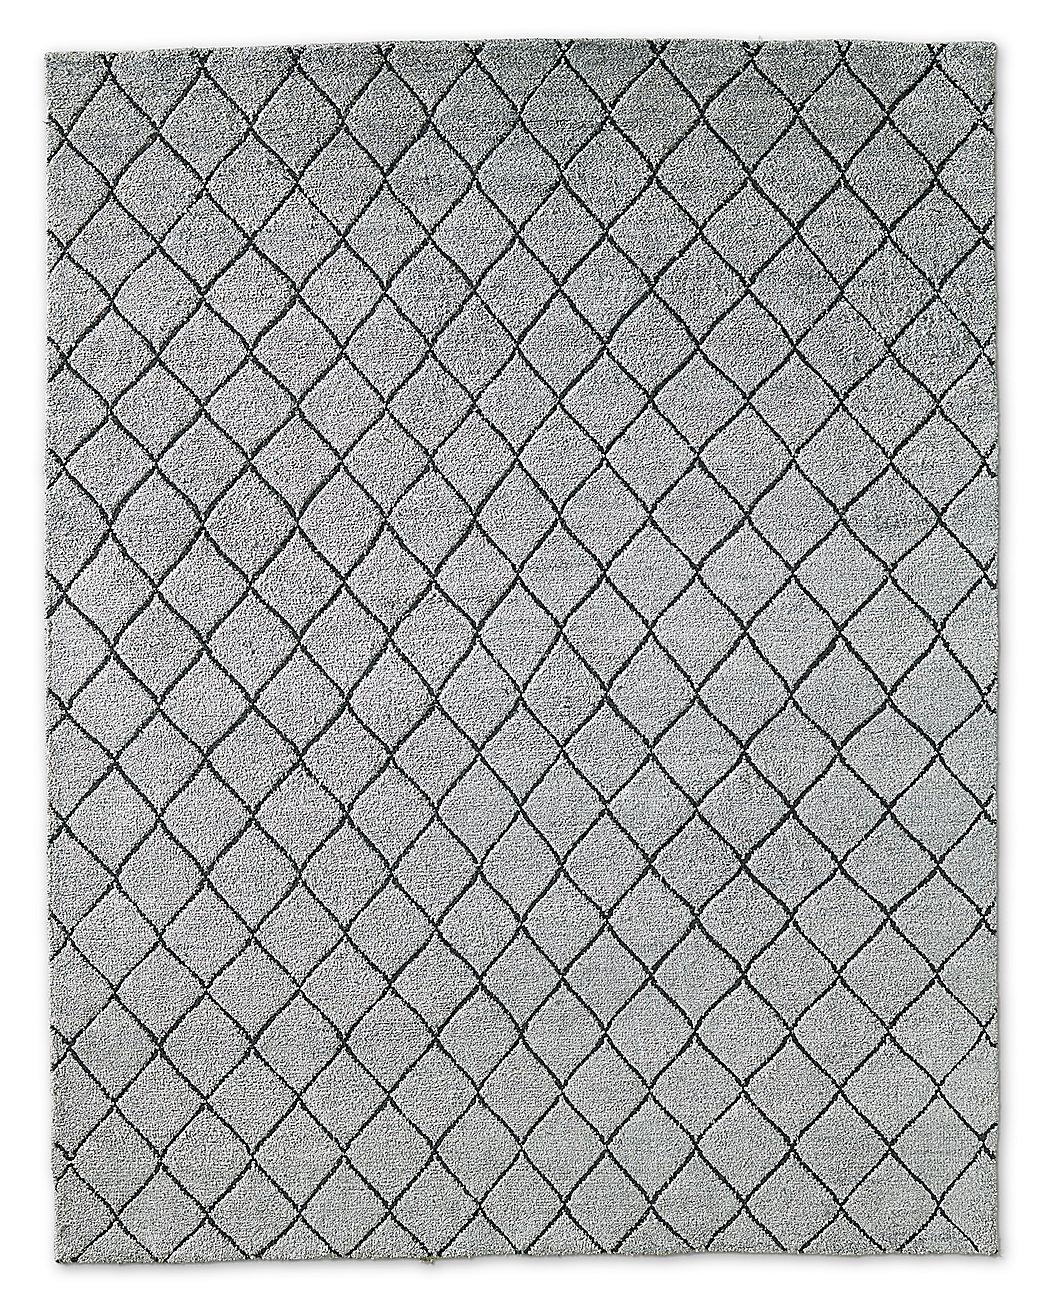 Reverse Raised Diamond Rug - Silver